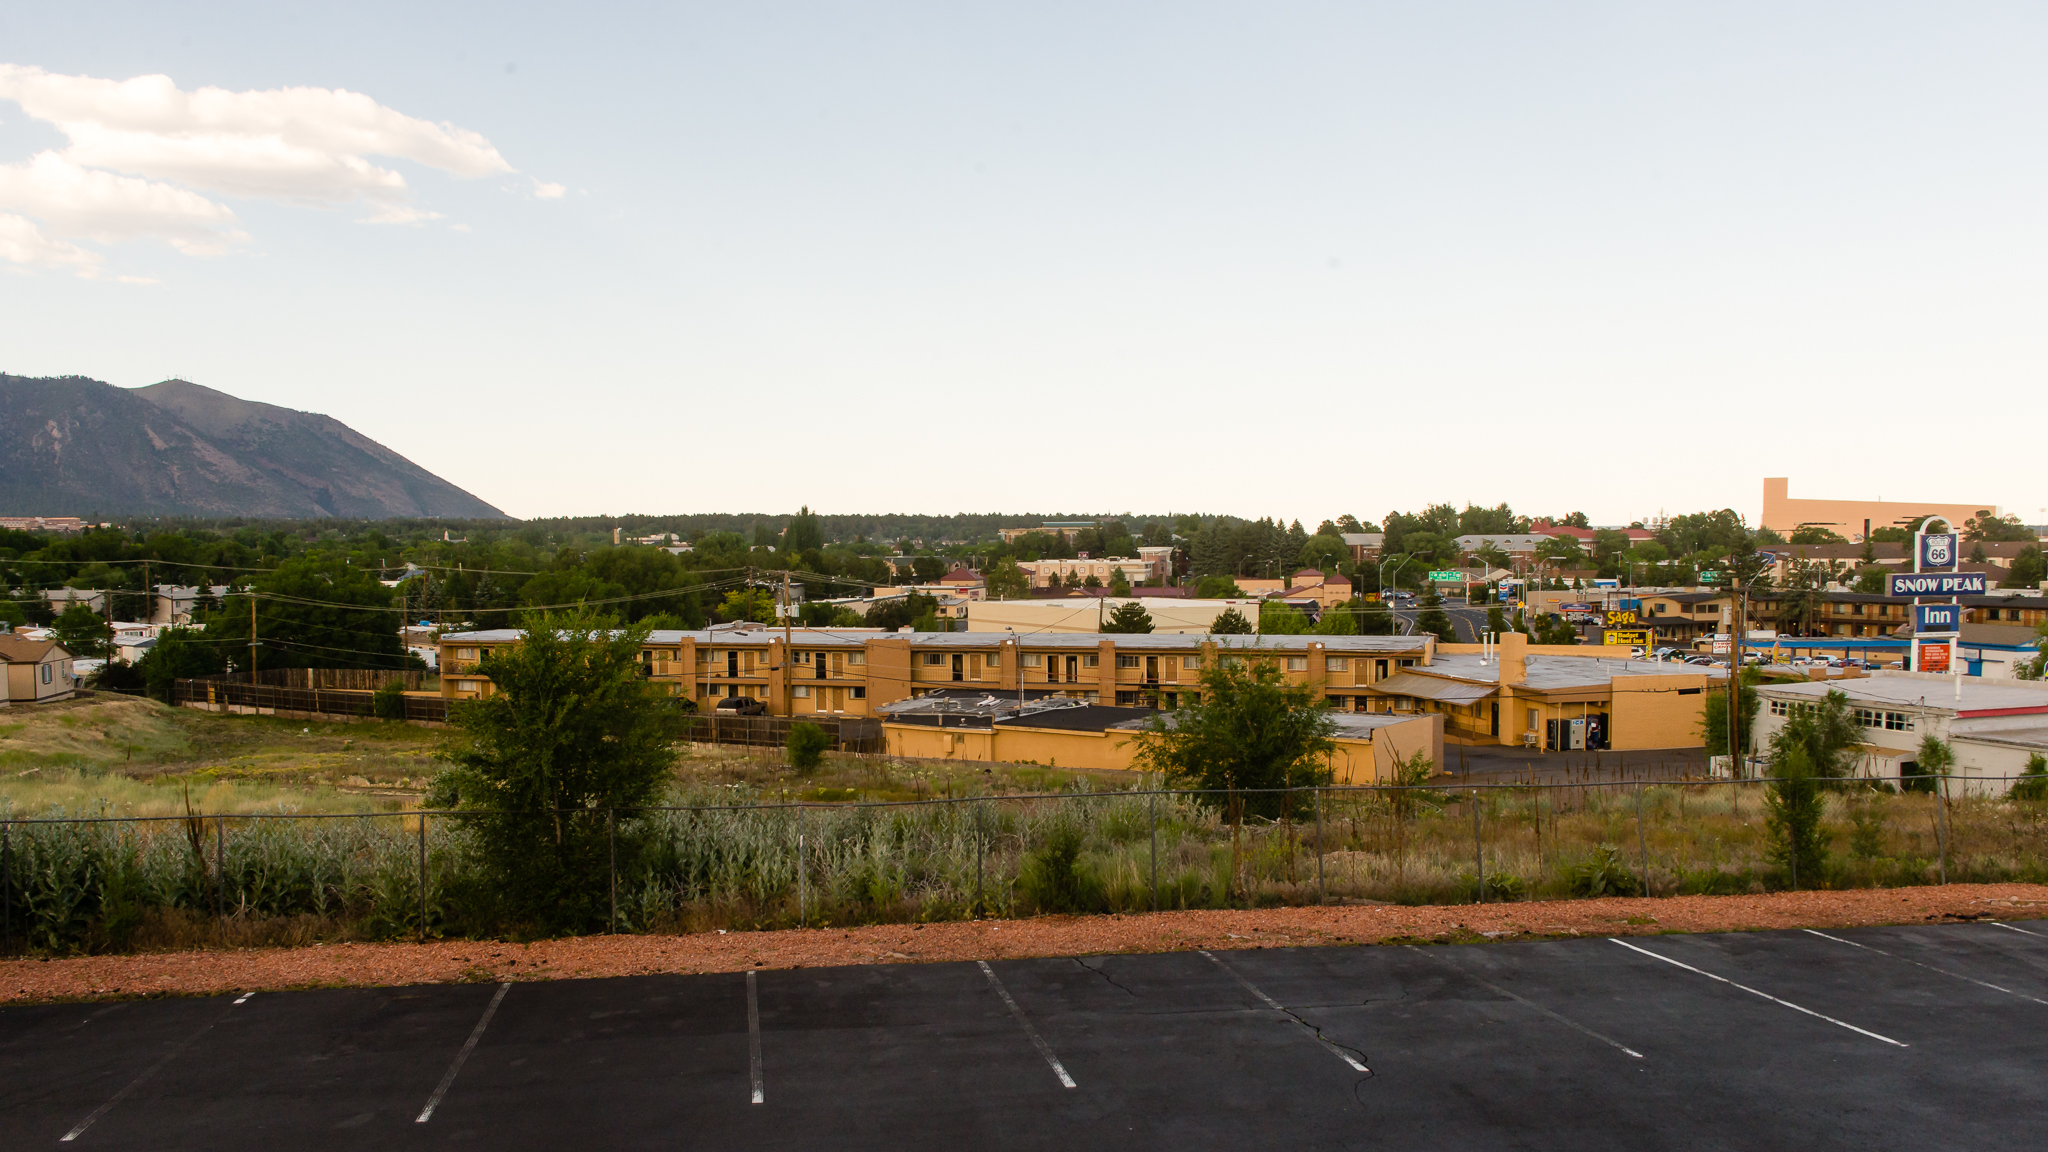 The view from our hotel! / 6/19/16 / Flagstaff, AZ